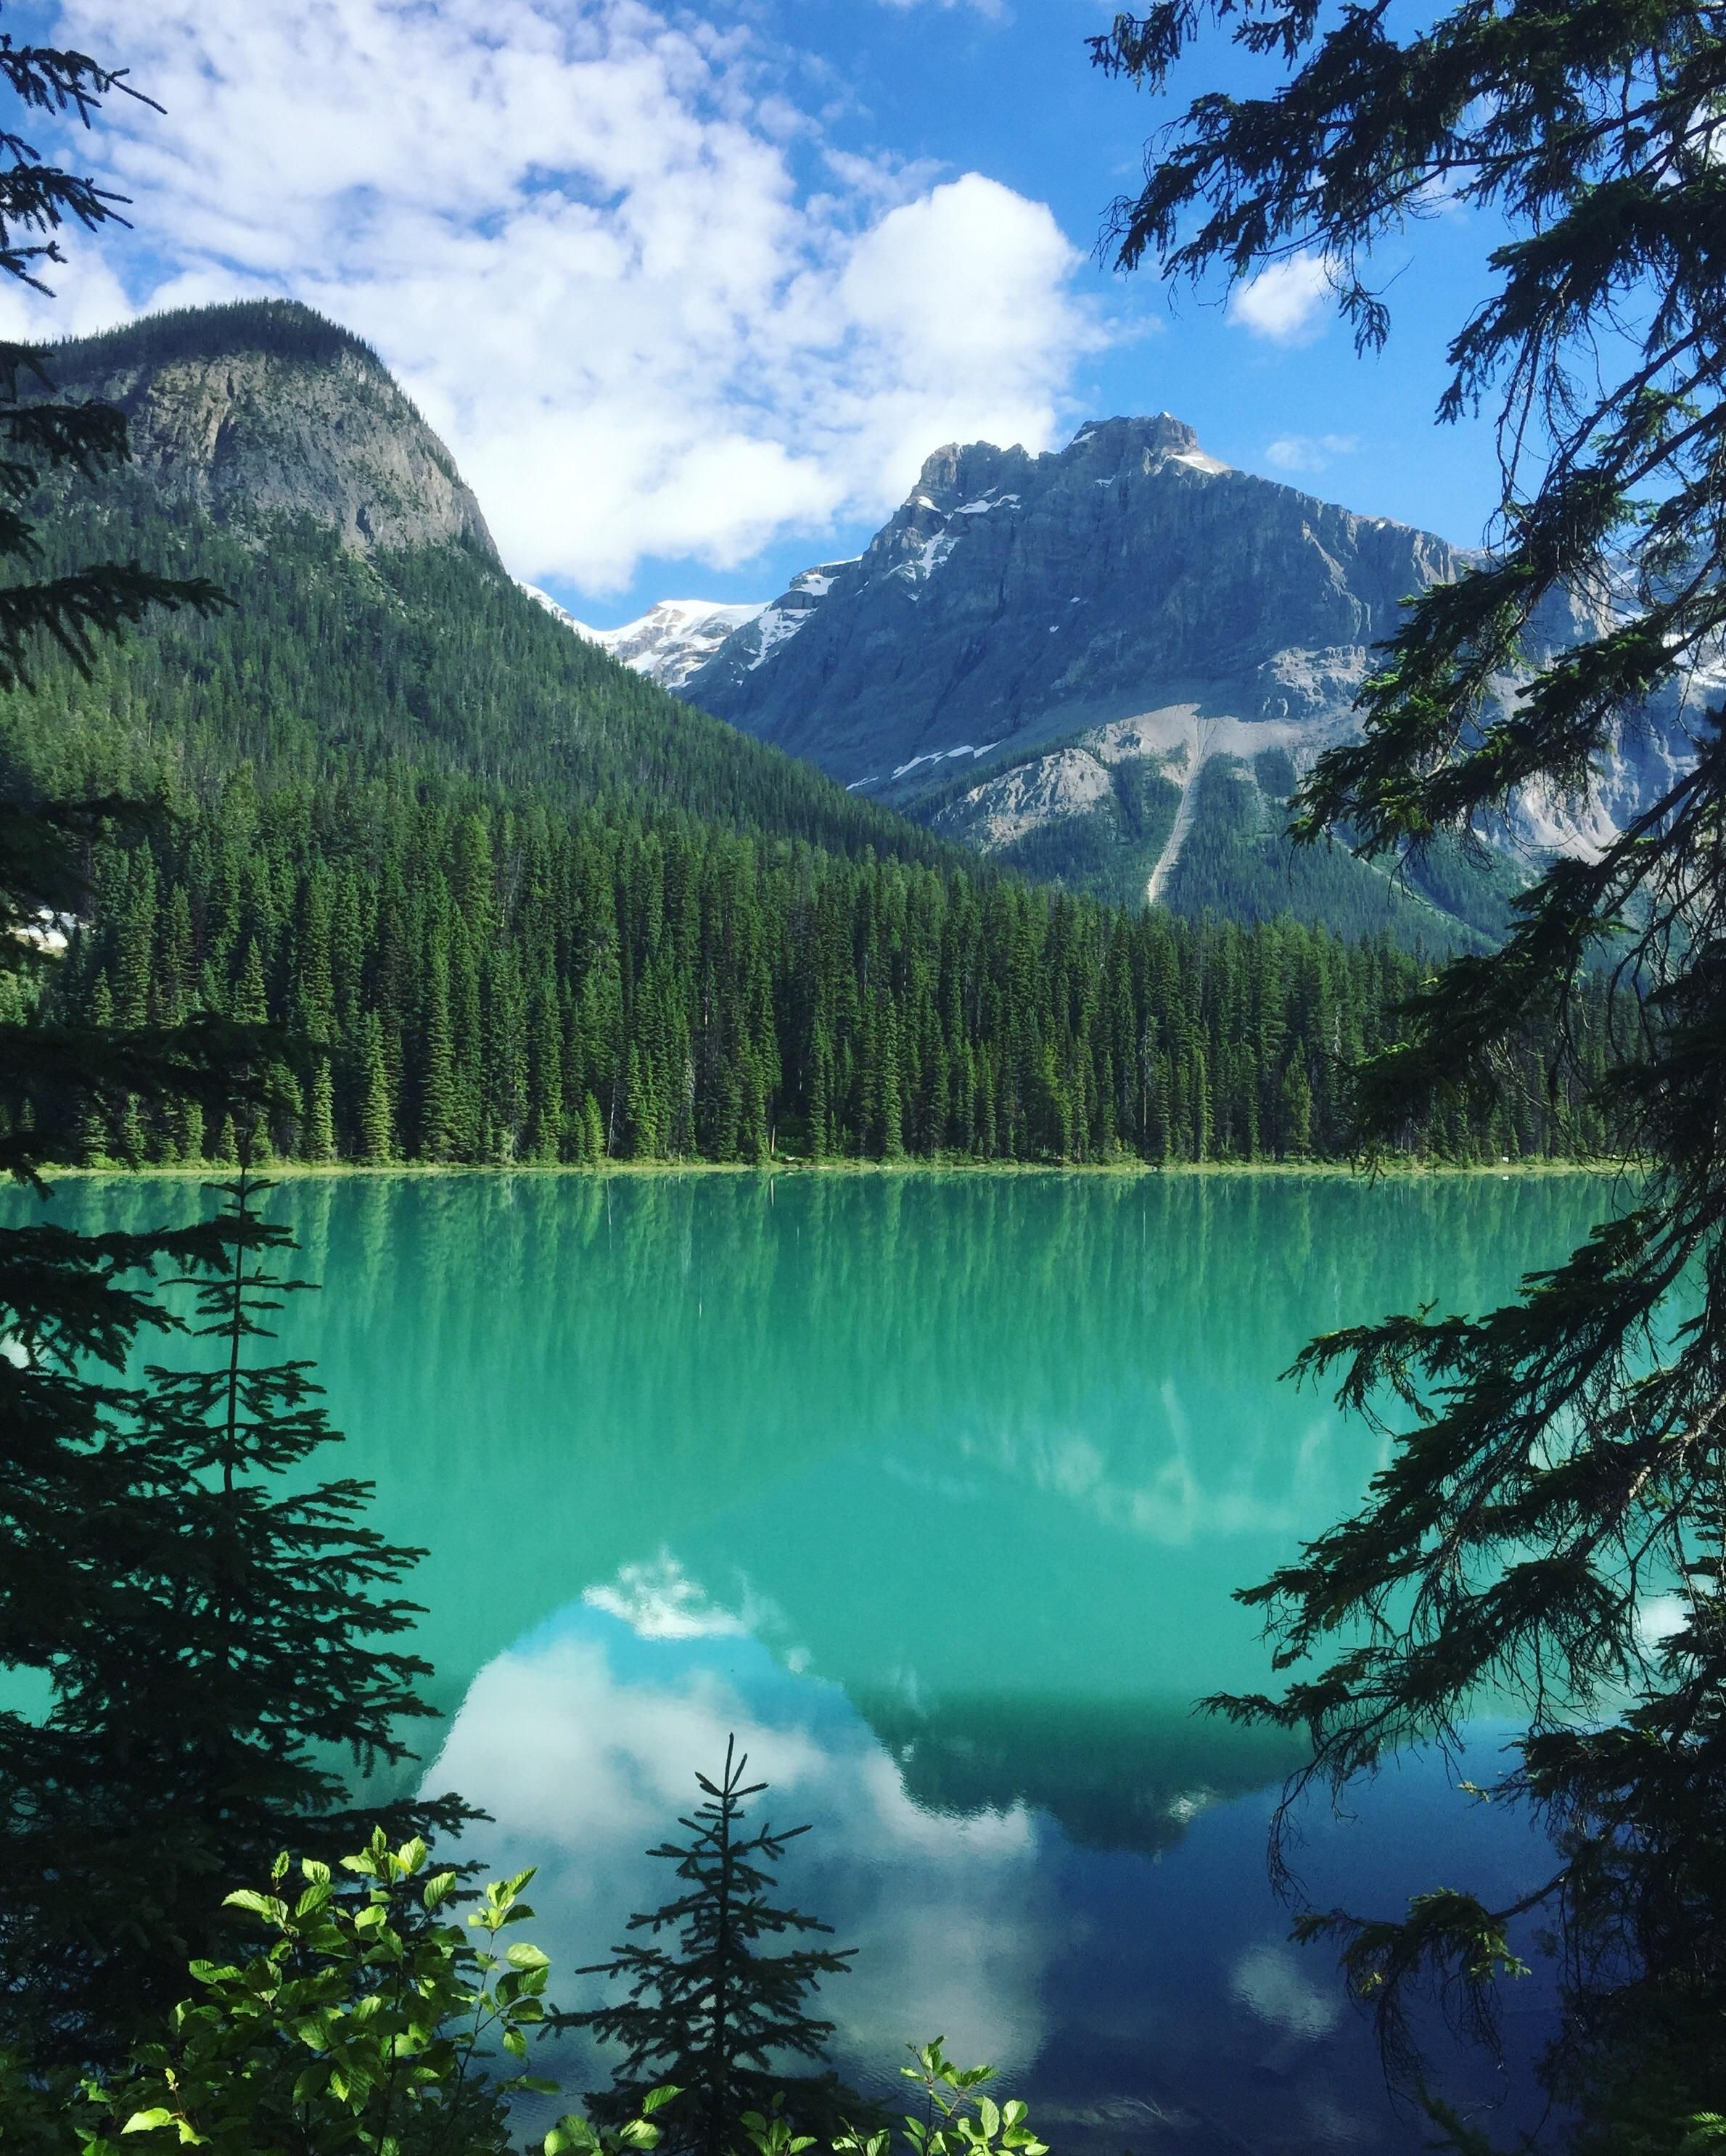 emerald lake nature